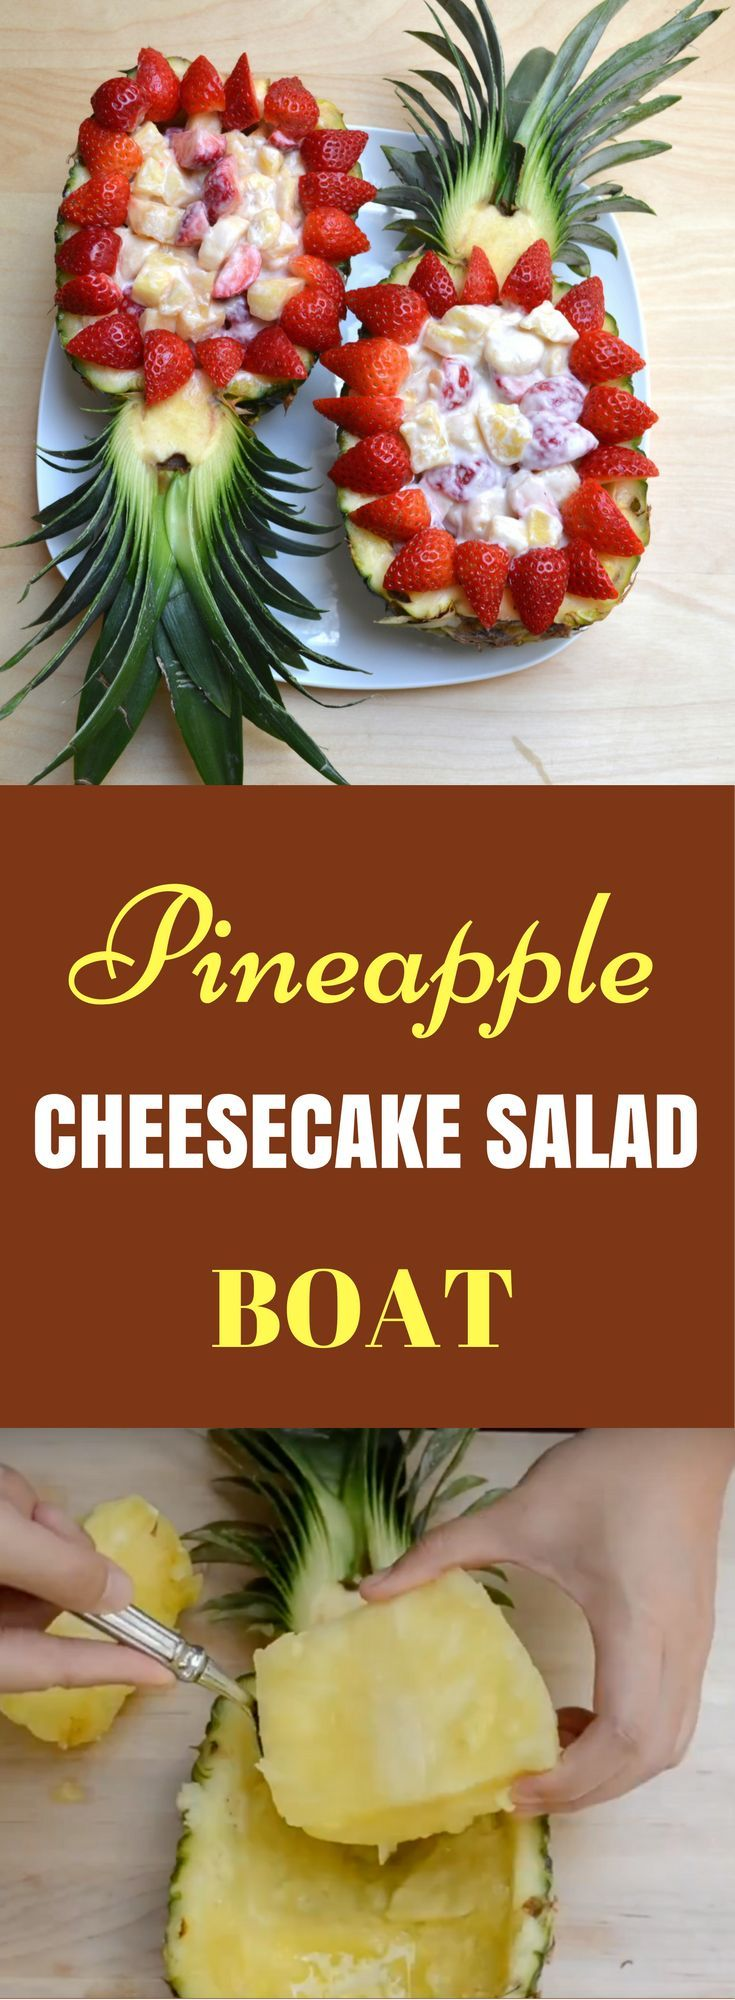 Pineapple Strawberry Cheesecake Salad recipe is no bake dessert recipe which is quick and easy to make. Use the pineapple as the boat or bowl to make it extra fun!